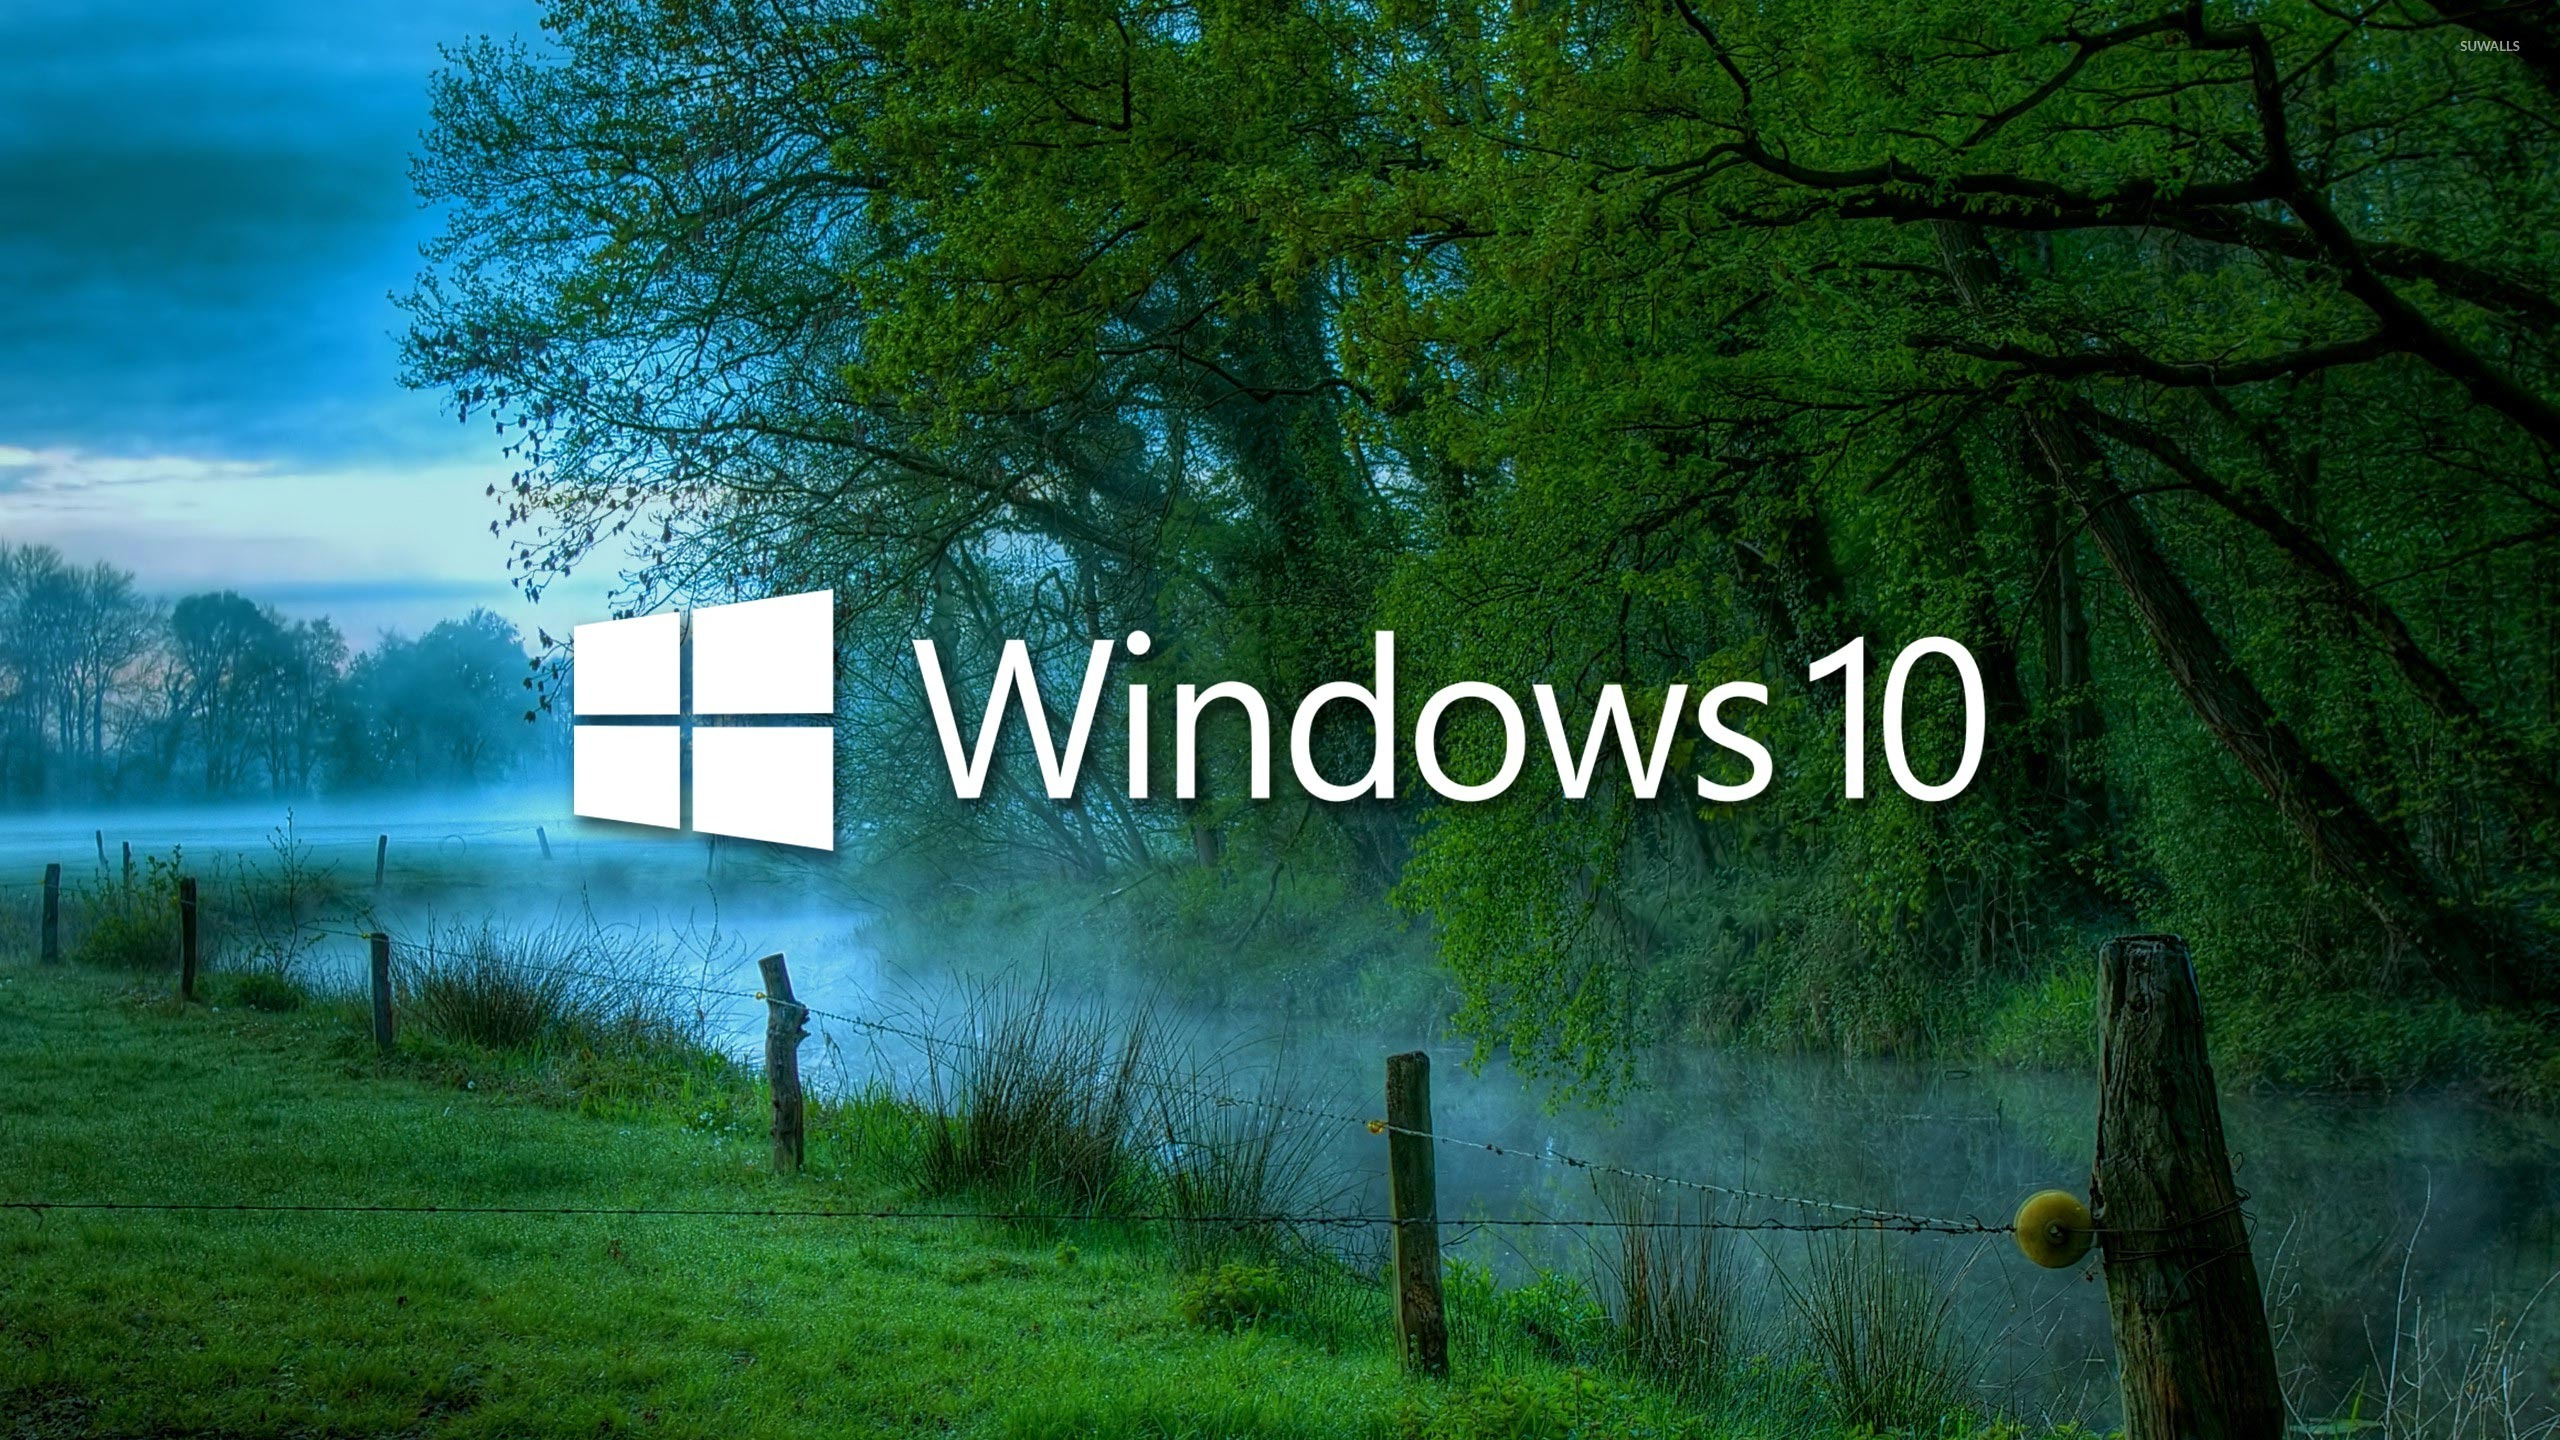 Fall Wallpaper Photos Microsoft Windows 10 In The Misty Morning Logo With Text Wallpaper